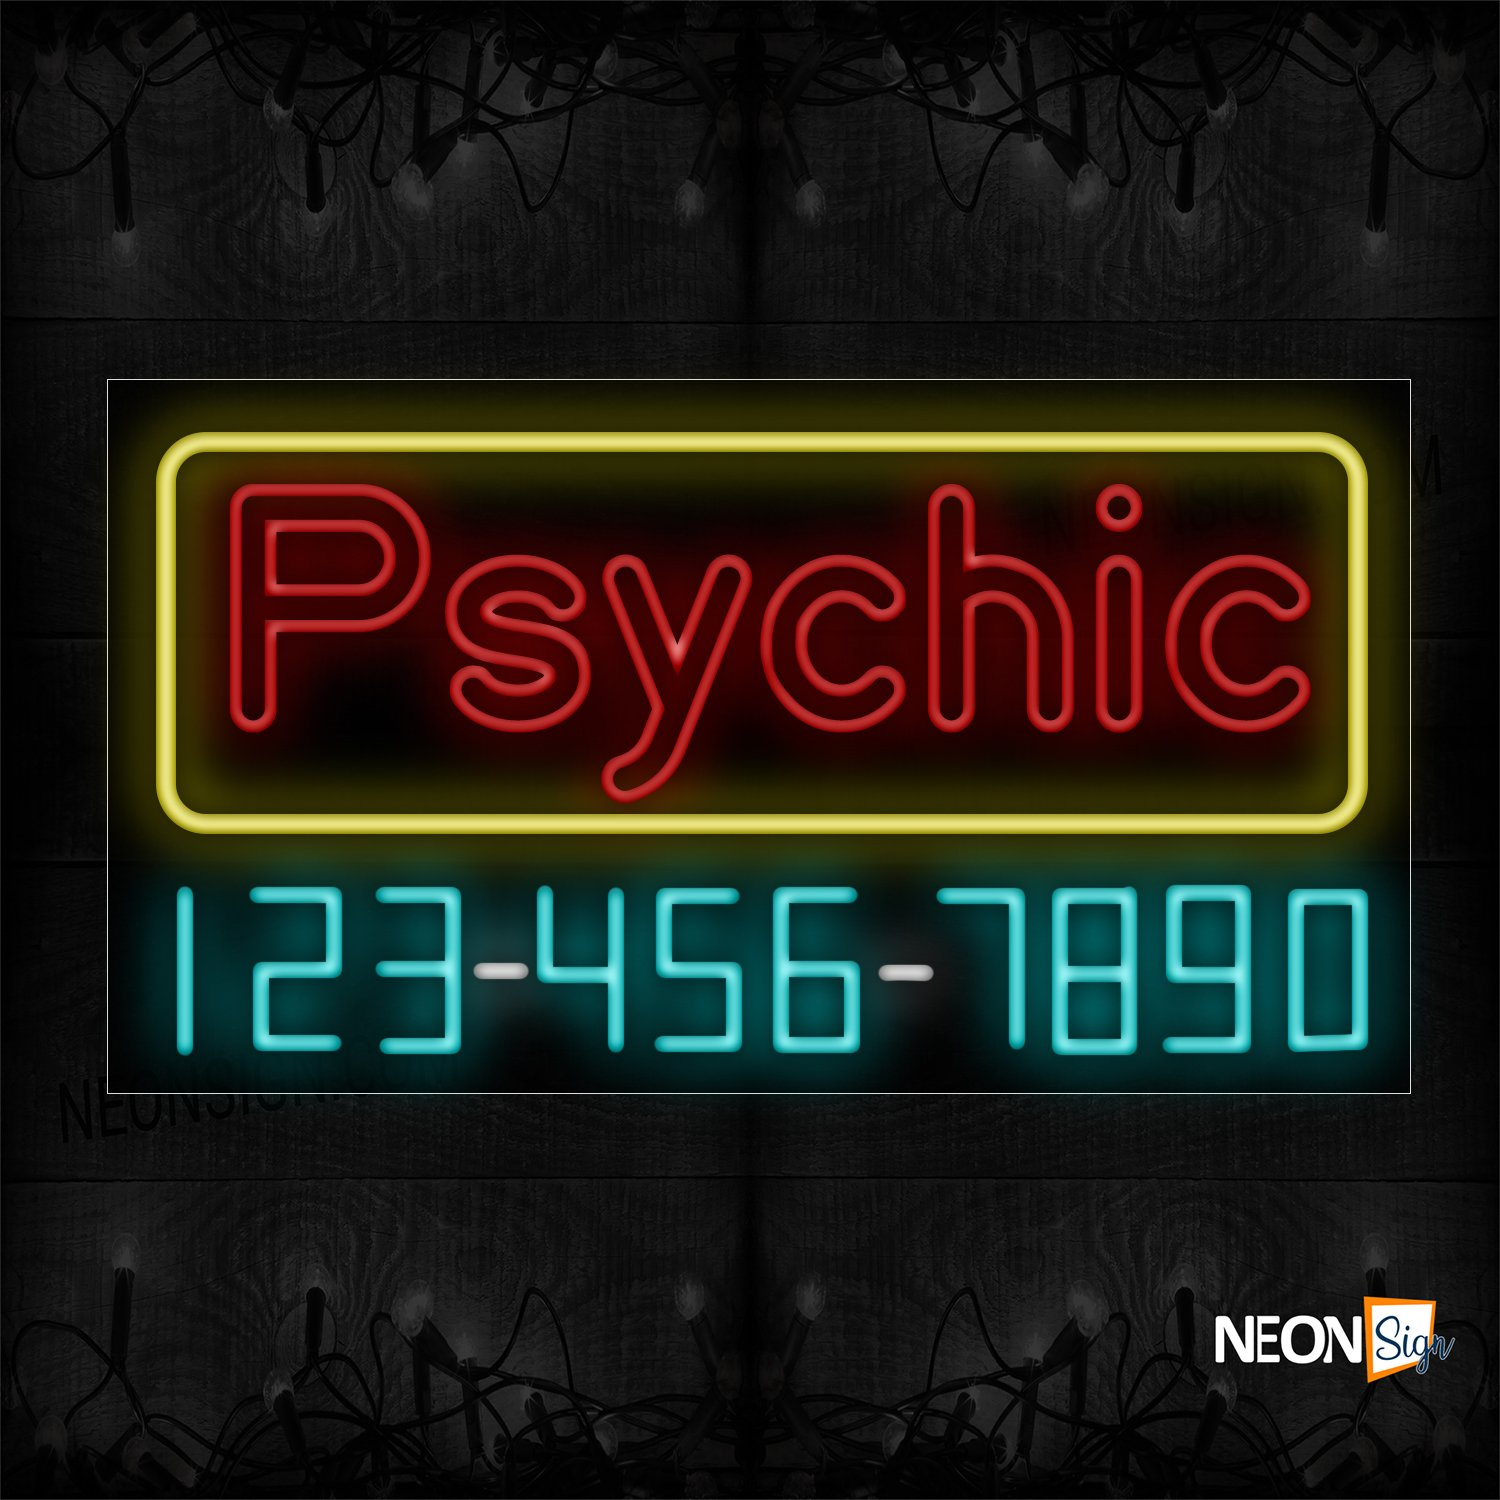 Image of 15099 Psychic With Border And Contact No Neon Sign_20x37 Black Backing